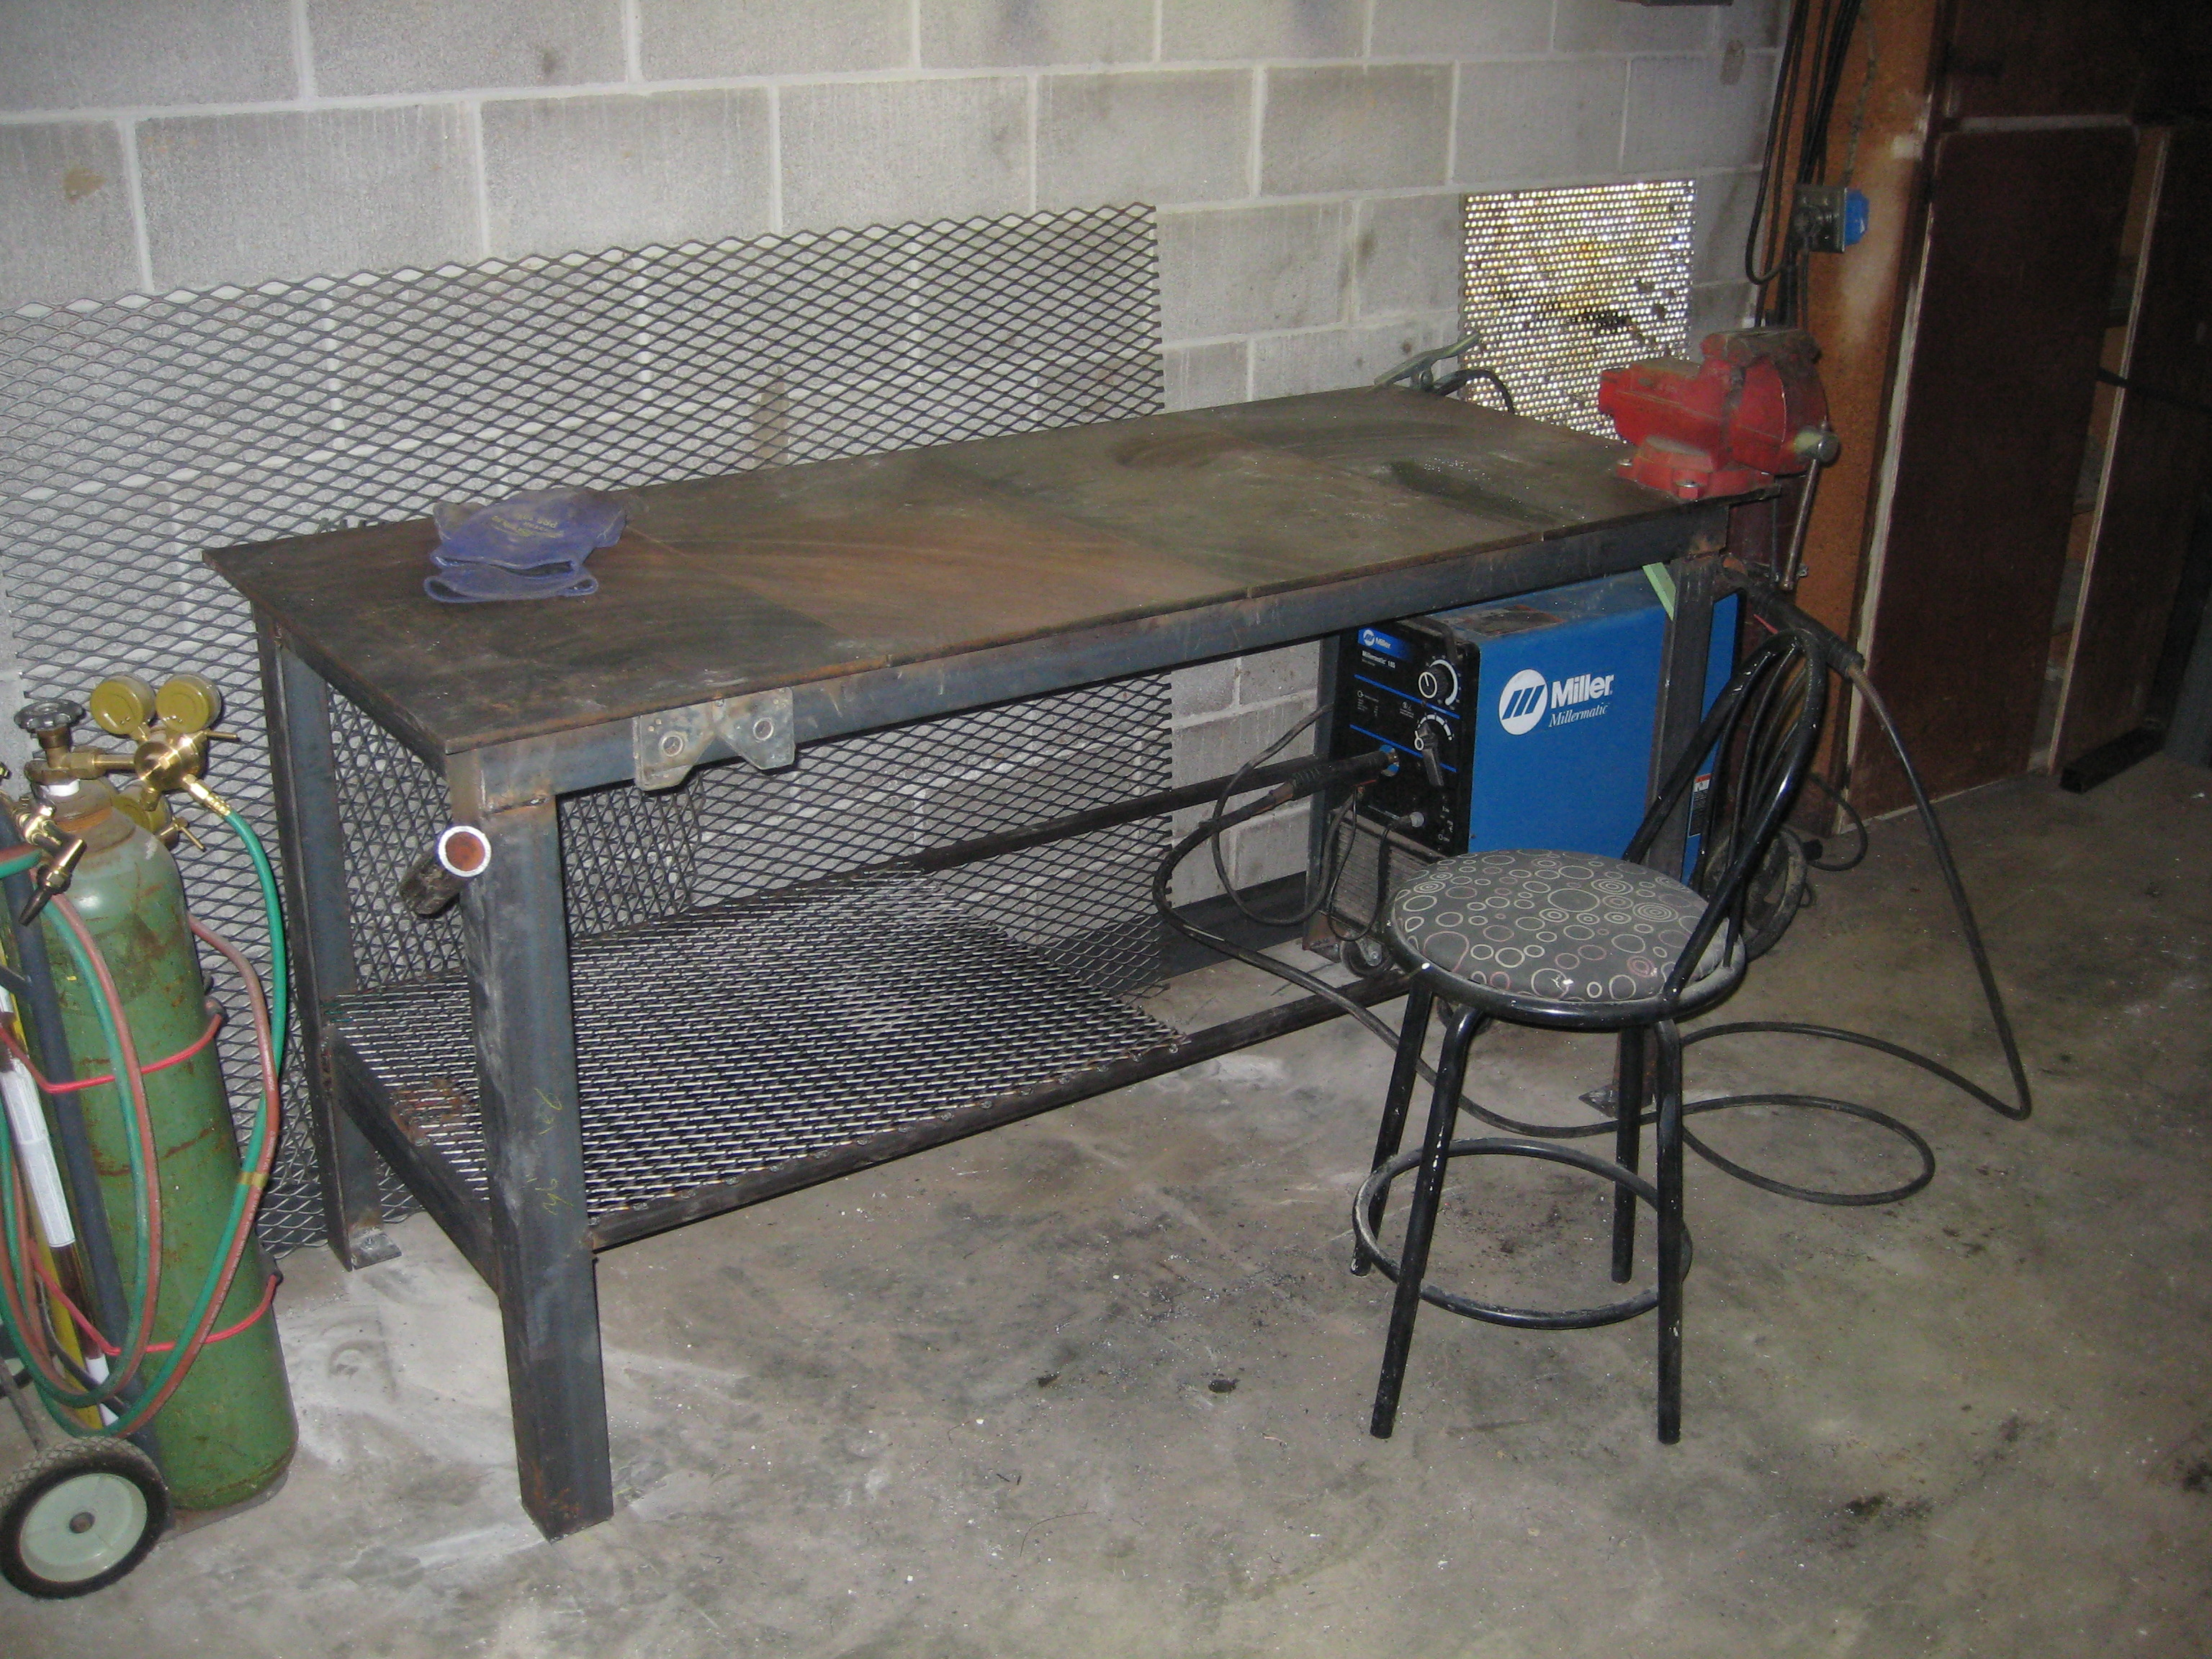 Welding Bench Ideas Part - 18: DIY Welding Table Plans Or Ideas PDF Download Rocking Chair Plan Dwg |  Thinkable44nzc